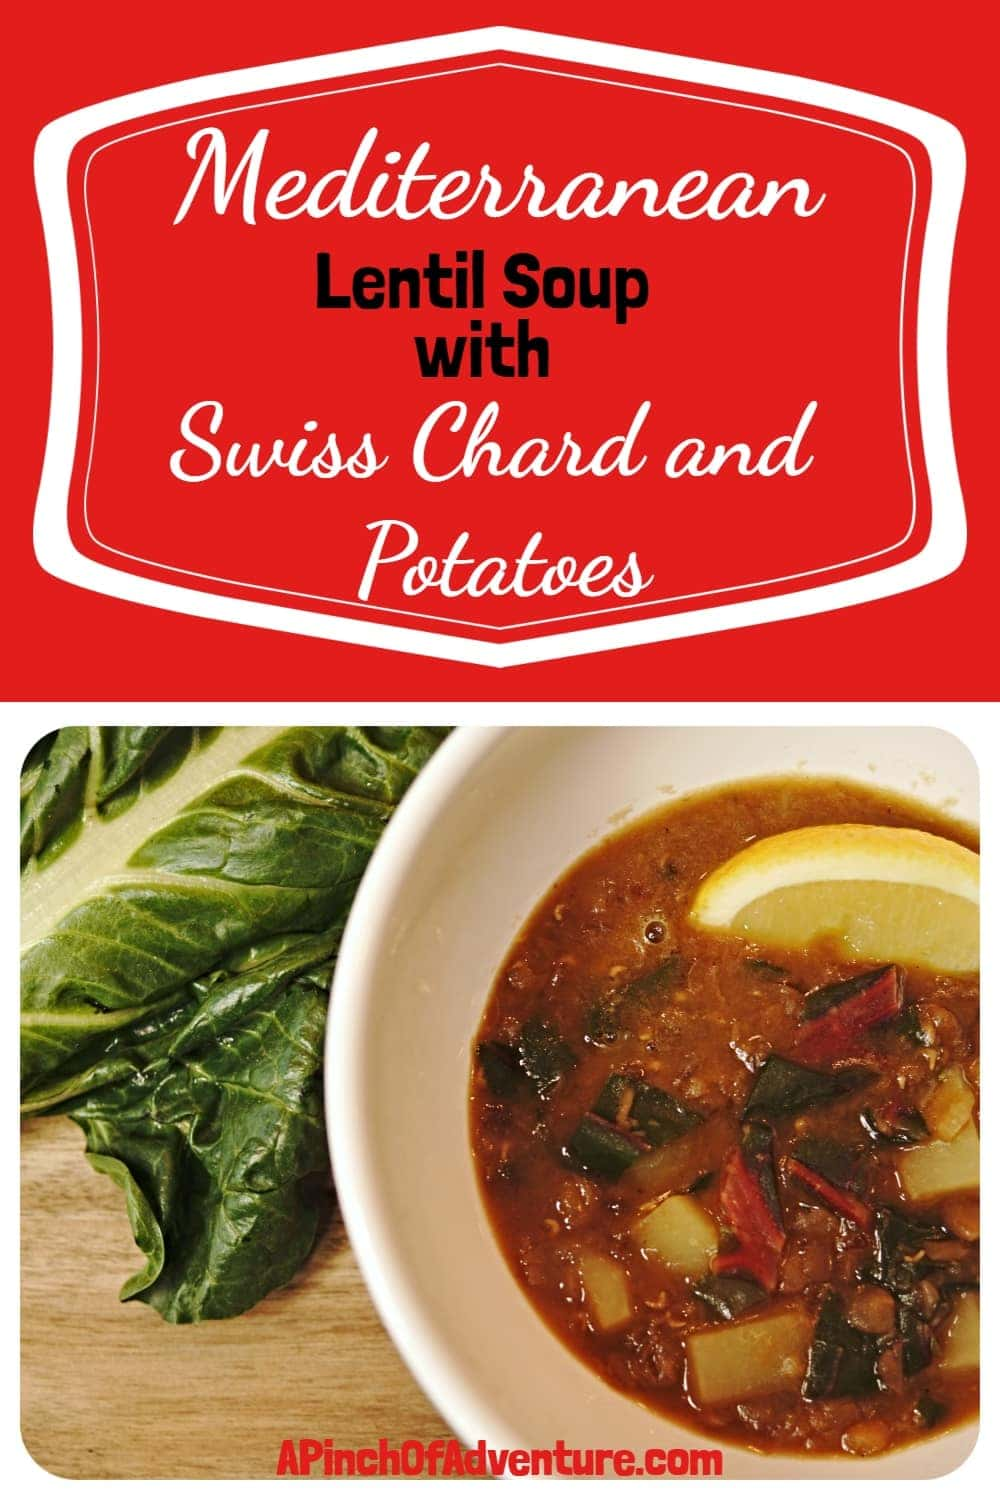 Mediterranean Lentil Soup with Swiss Chard and Potatoes is a delicious Lebanese soup that is a beautiful blend of spices and lemon. This vegan soup is a tasty and healthy dinner idea full of deep rich flavor of caramelized onions and protein packed lentils. -APinchOfAdventure